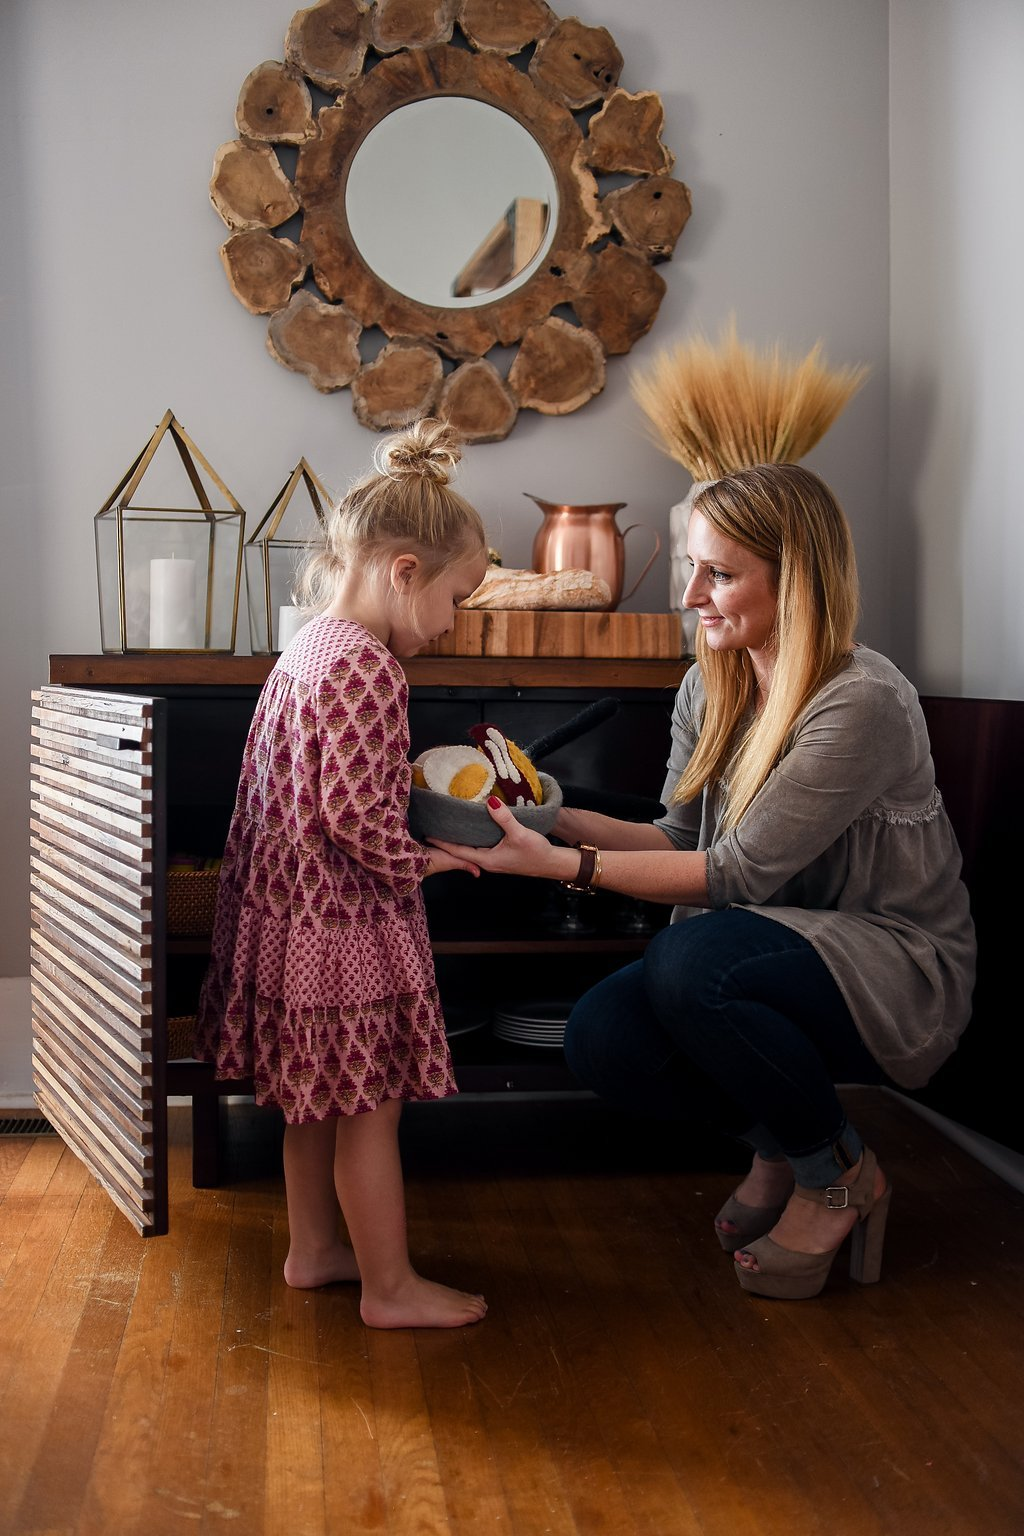 Mother and daughter opening sideboard to gather dinnerware and flatware